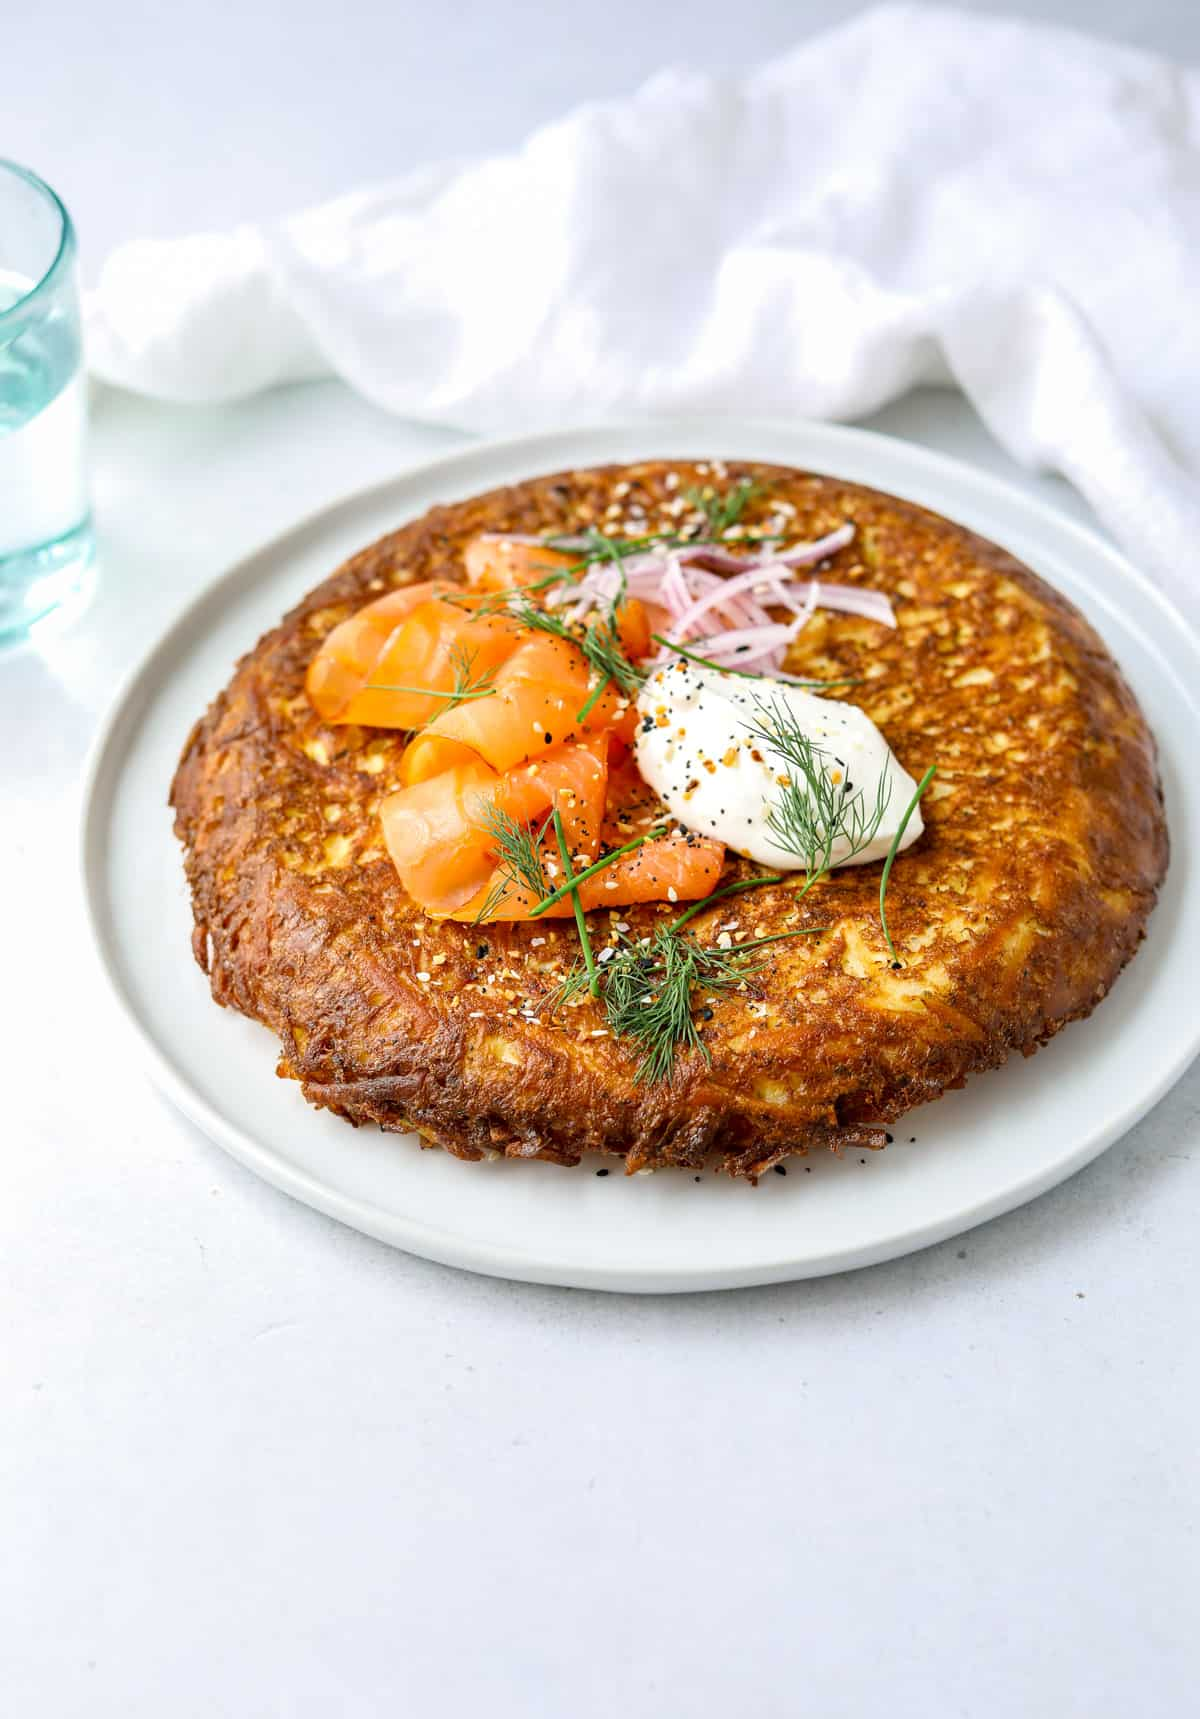 a hash brown frittata on a white plate topped with sour cream, smoked salmon and fresh herbs with a blue glass pitcher in the background and a white cloth napkin